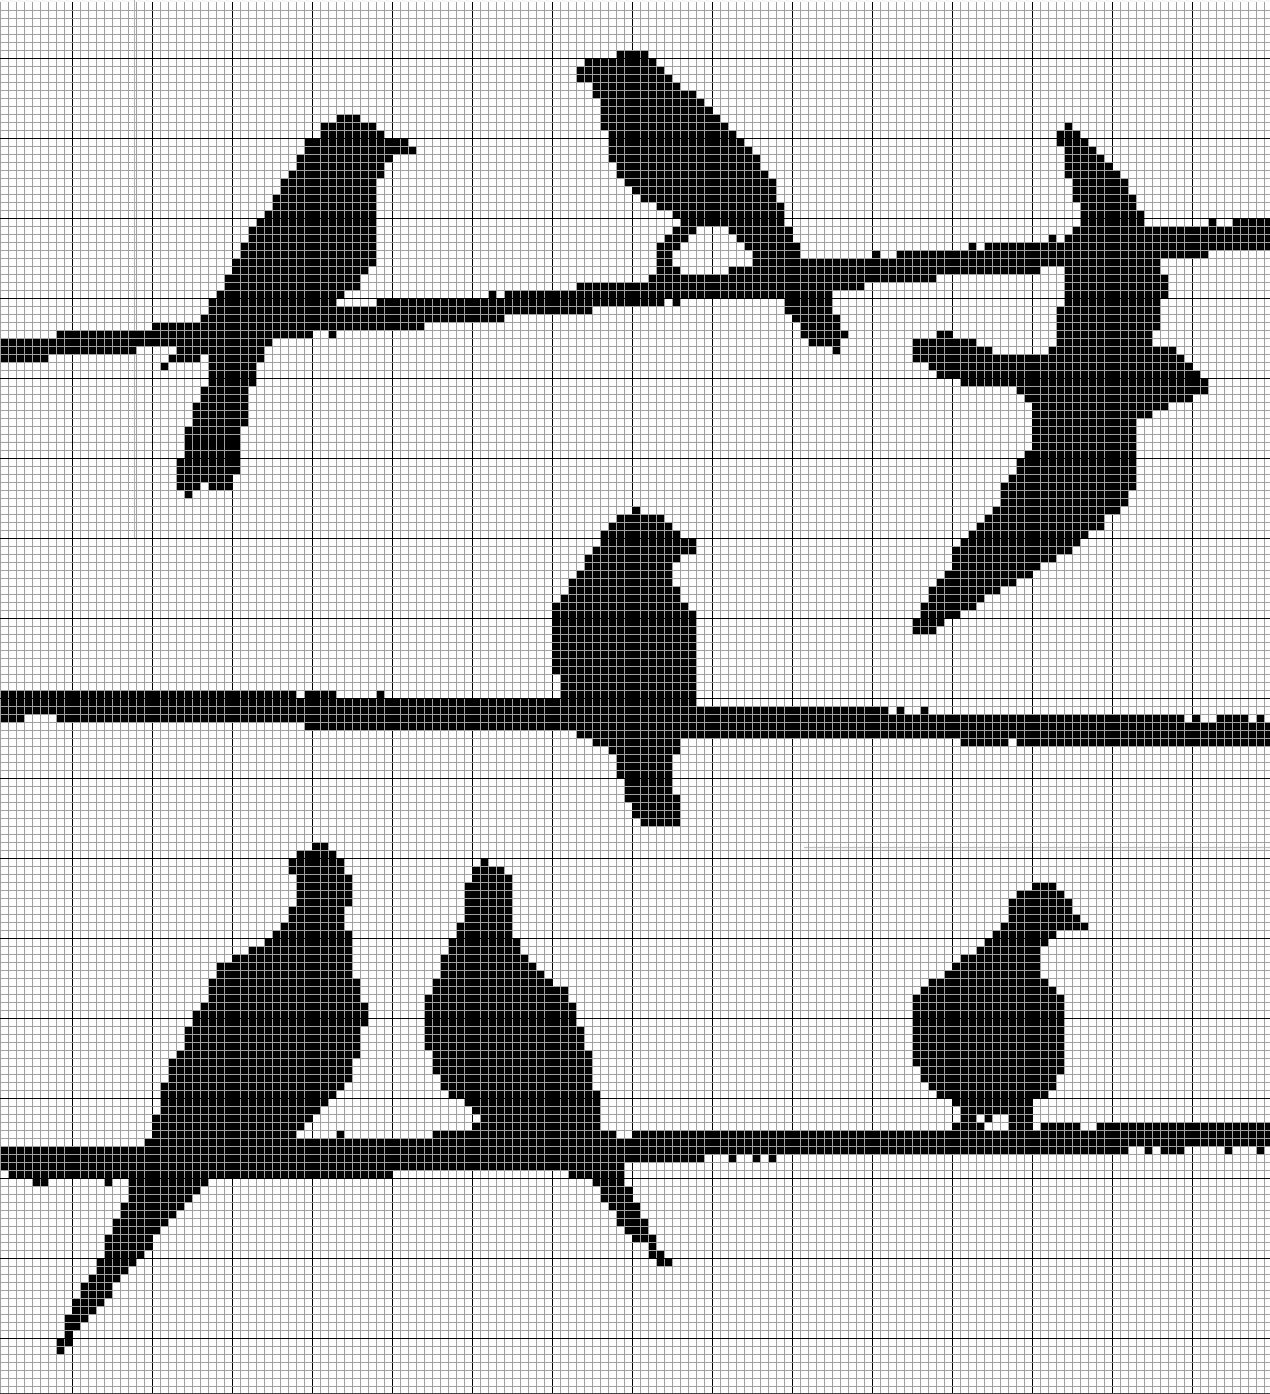 free cross stitch patterns birds - Google Search | latch ...